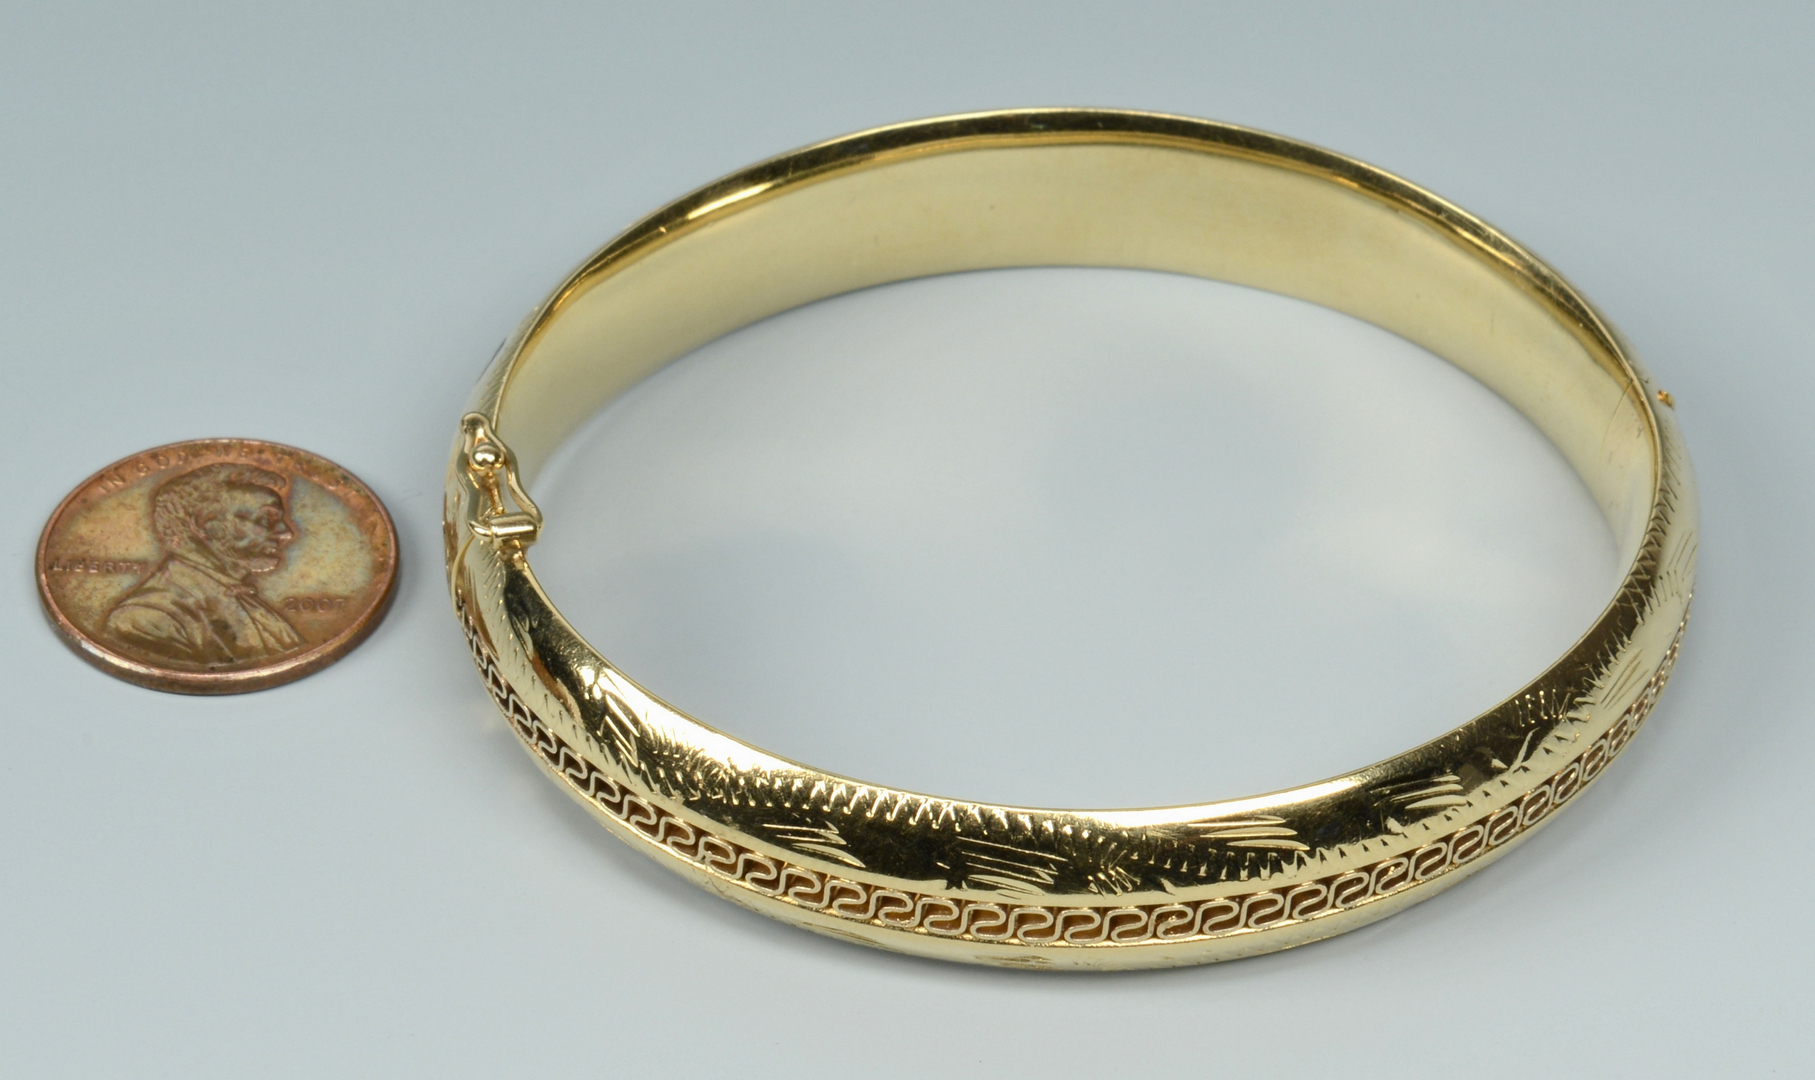 Lot 3088220: 14k gold bangle bracelet, 18.7 grams